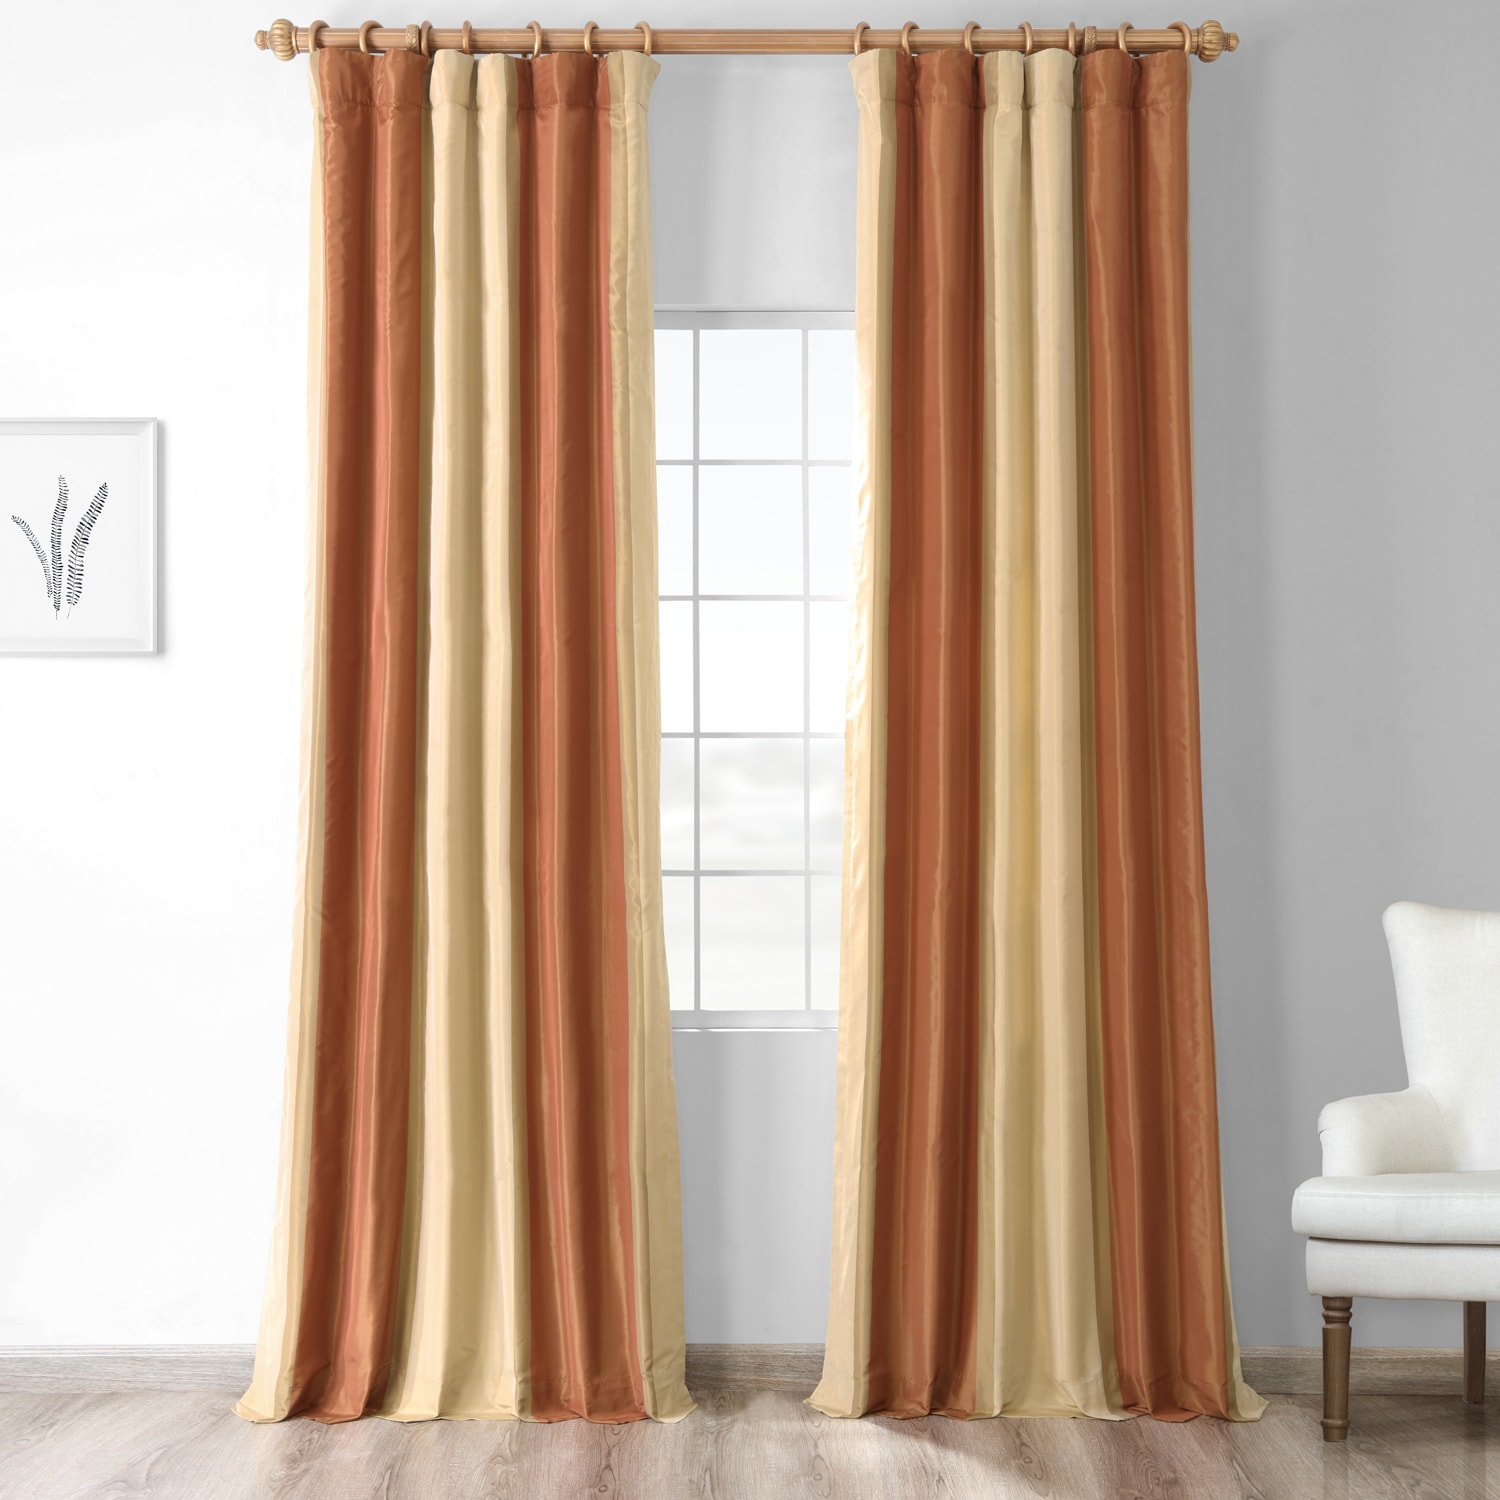 Dorset Luxury Faux Silk Stripe Curtain